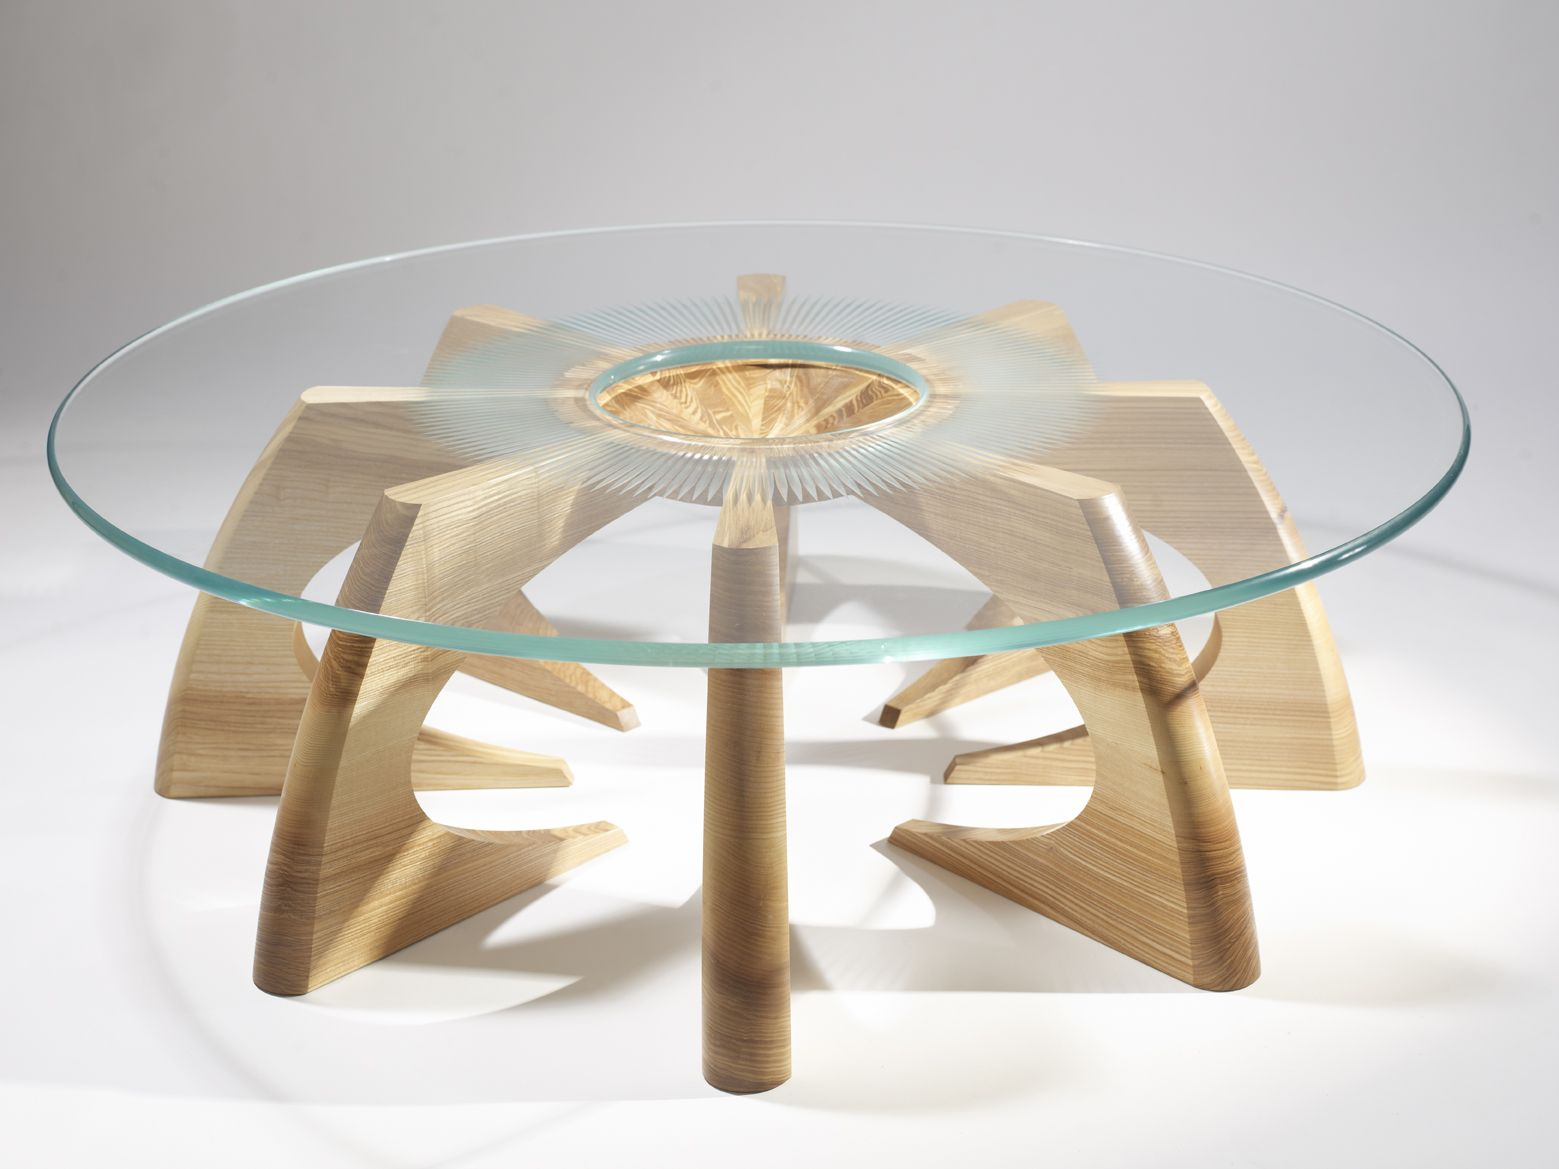 Wood Table Designs Free Wood Furniture Plans Cnc